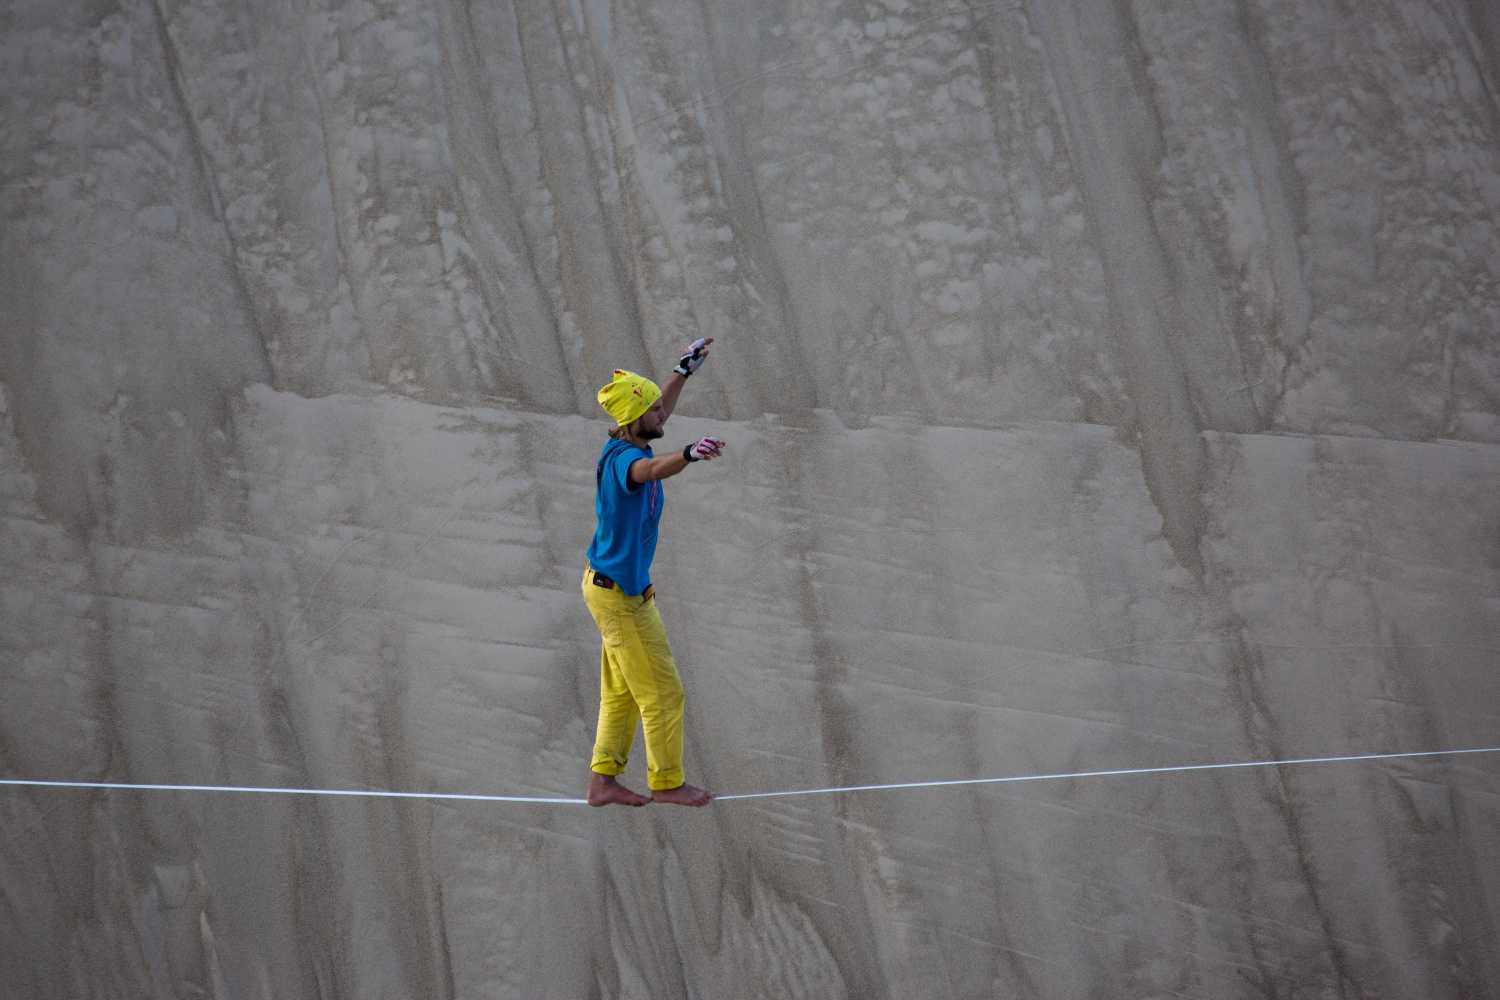 Wueste_China_Slackline-World-record (14).jpg